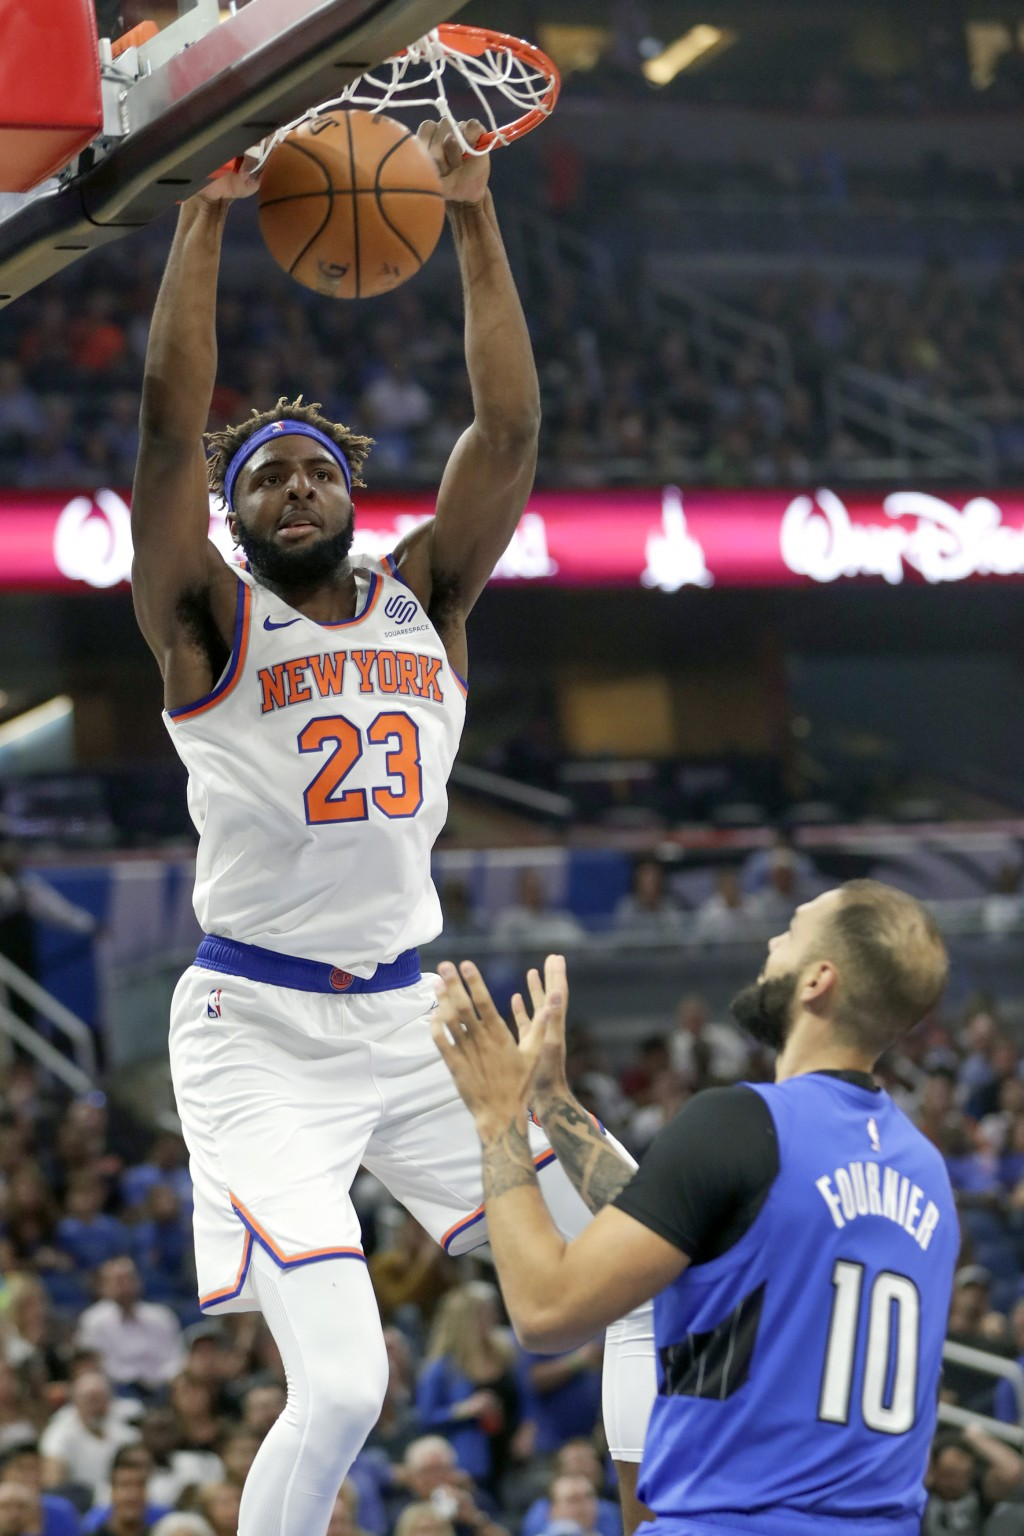 New York Knicks' Mitchell Robinson (23) dunks the ball over Orlando Magic's Evan Fournier (10) during the first half of an NBA basketball game, Wednes...